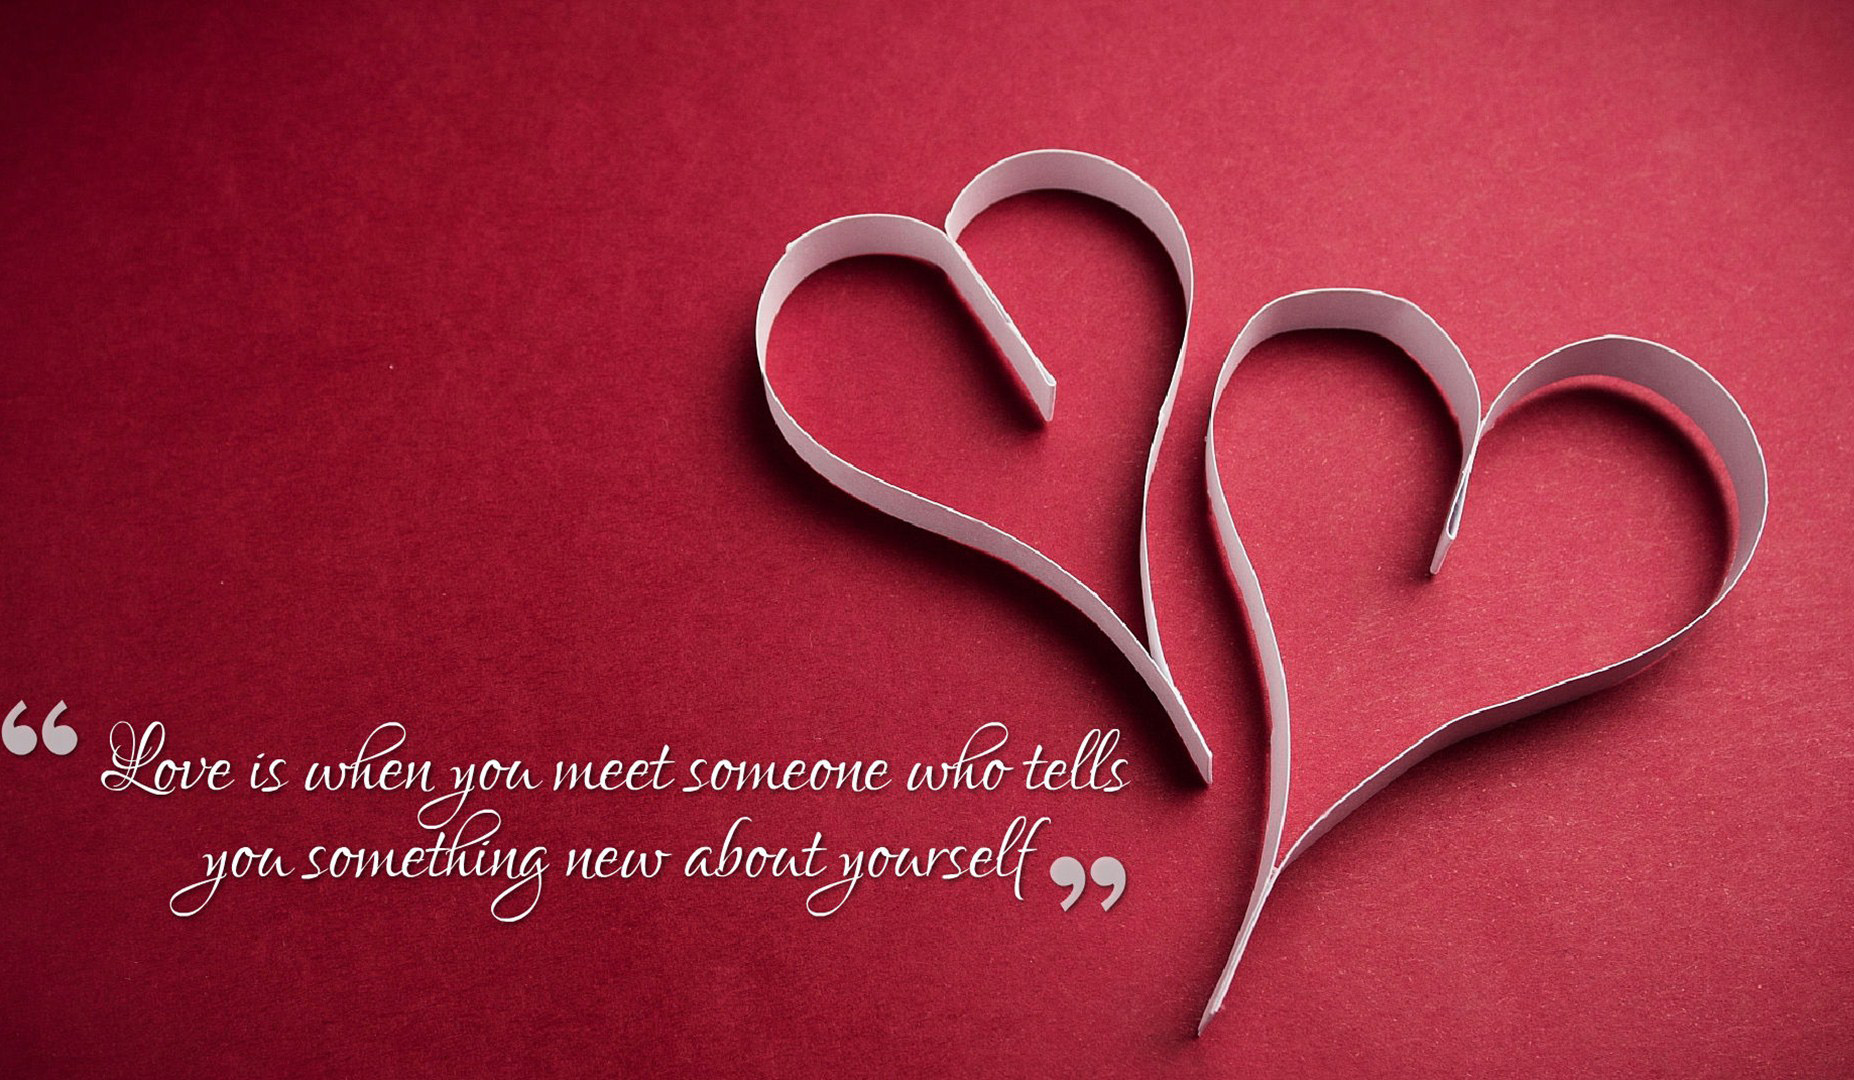 Love Hd Wallpaper For Fb : Quotes About Love Wallpapers, Pictures, Images